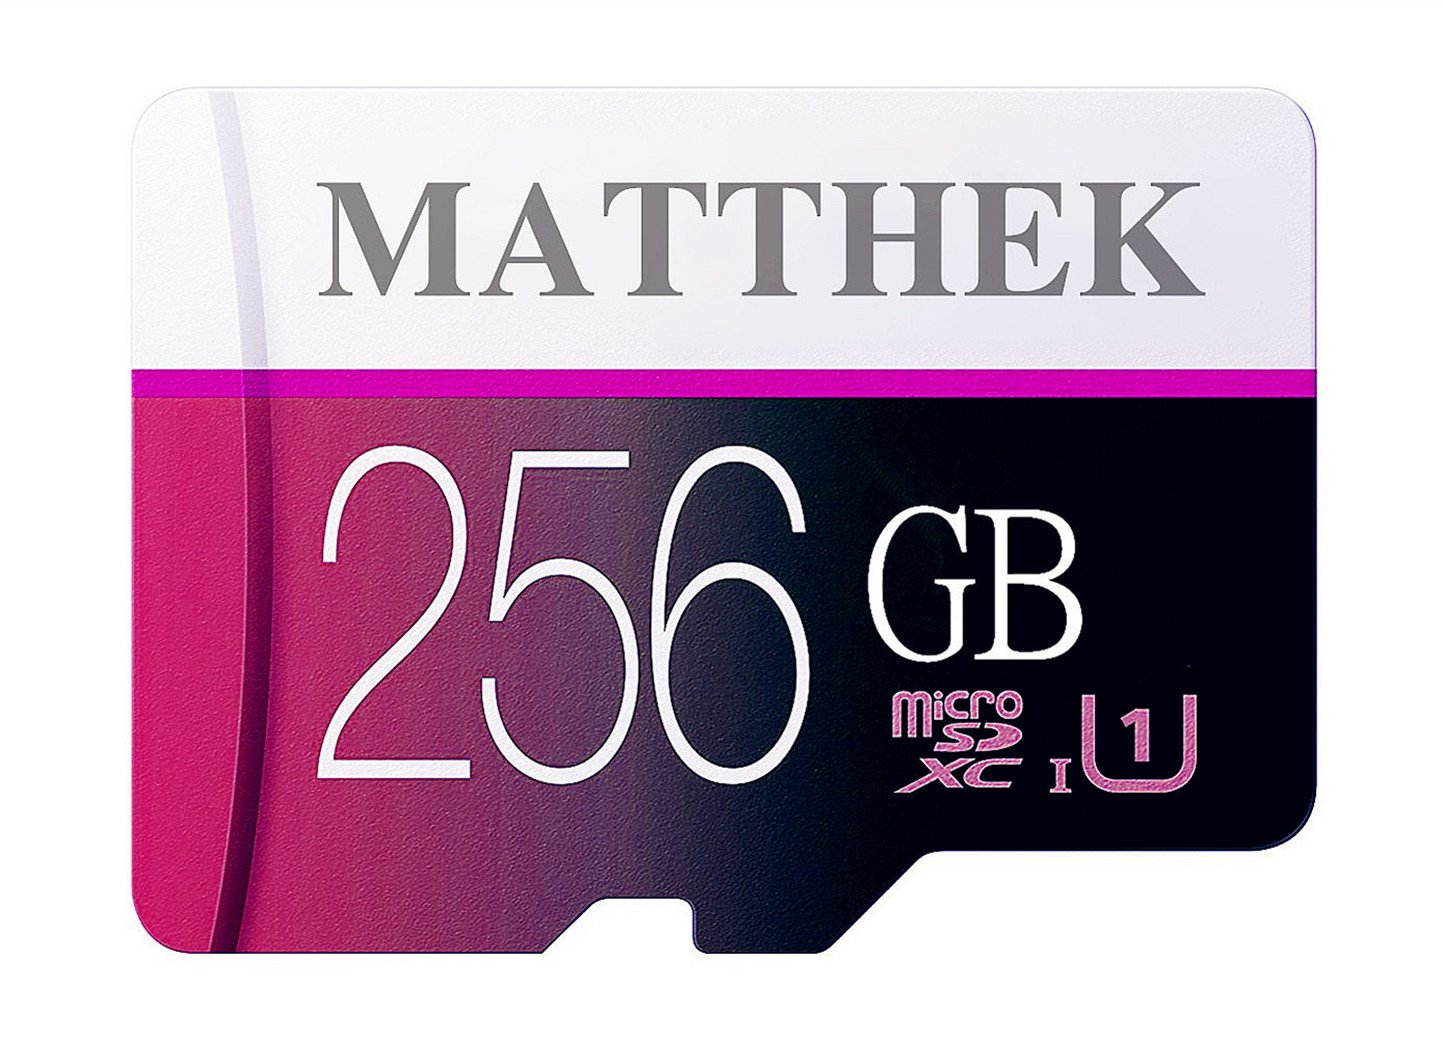 Matthek 256GB Micro SD SDXC Memory Card High Speed Class 10 With Micro SD Adapter(M239-U5)